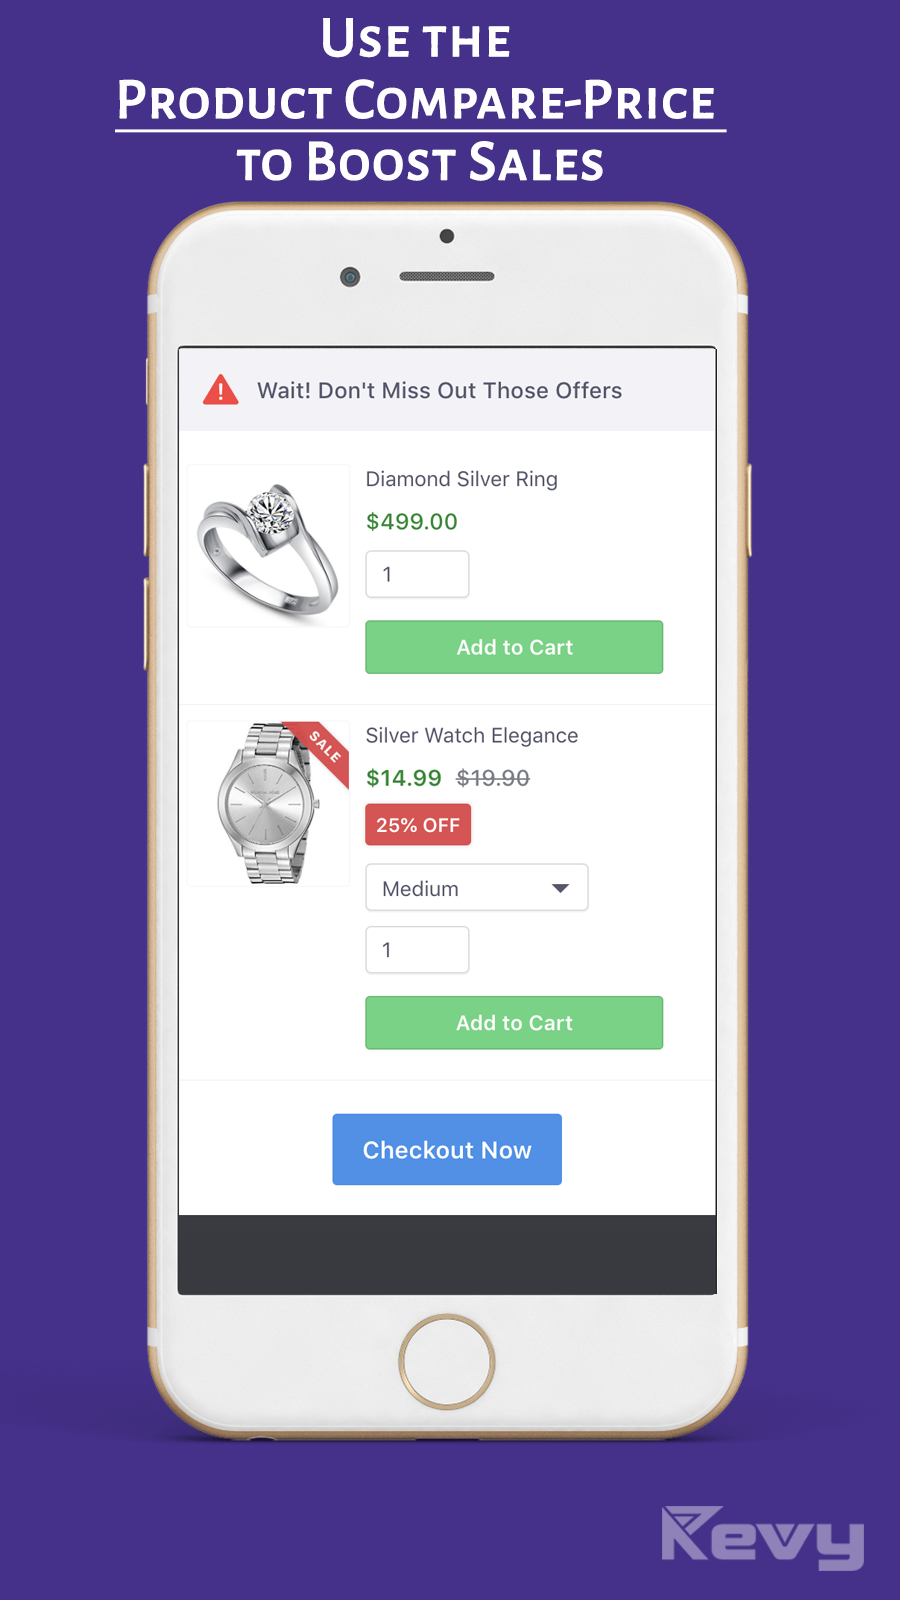 Use the compare-price of the products as discounts to sell more